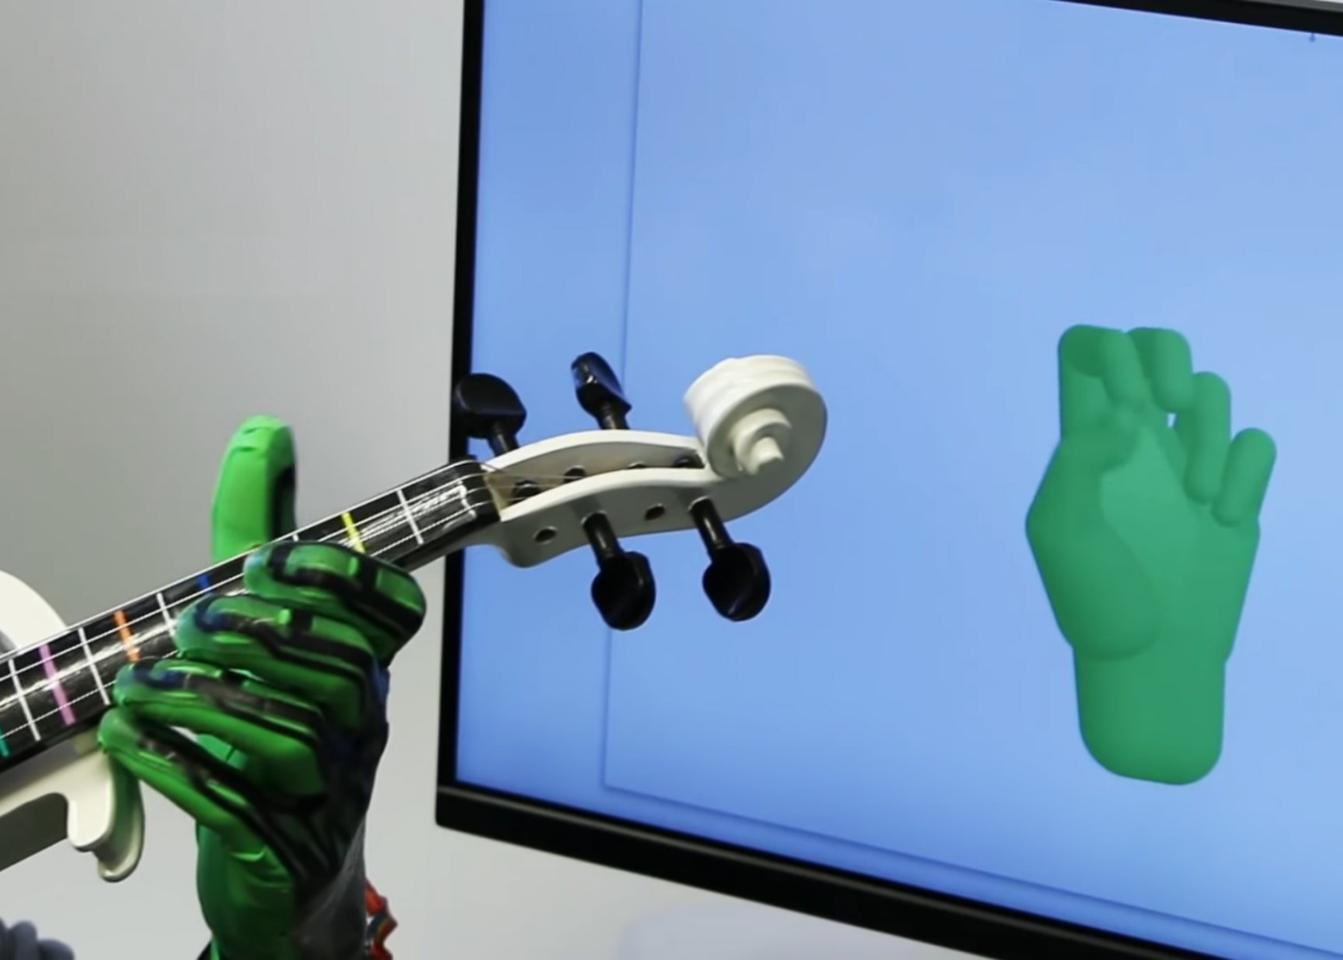 The glove can recognize hand gestures in low light and even when the hand is holding an object